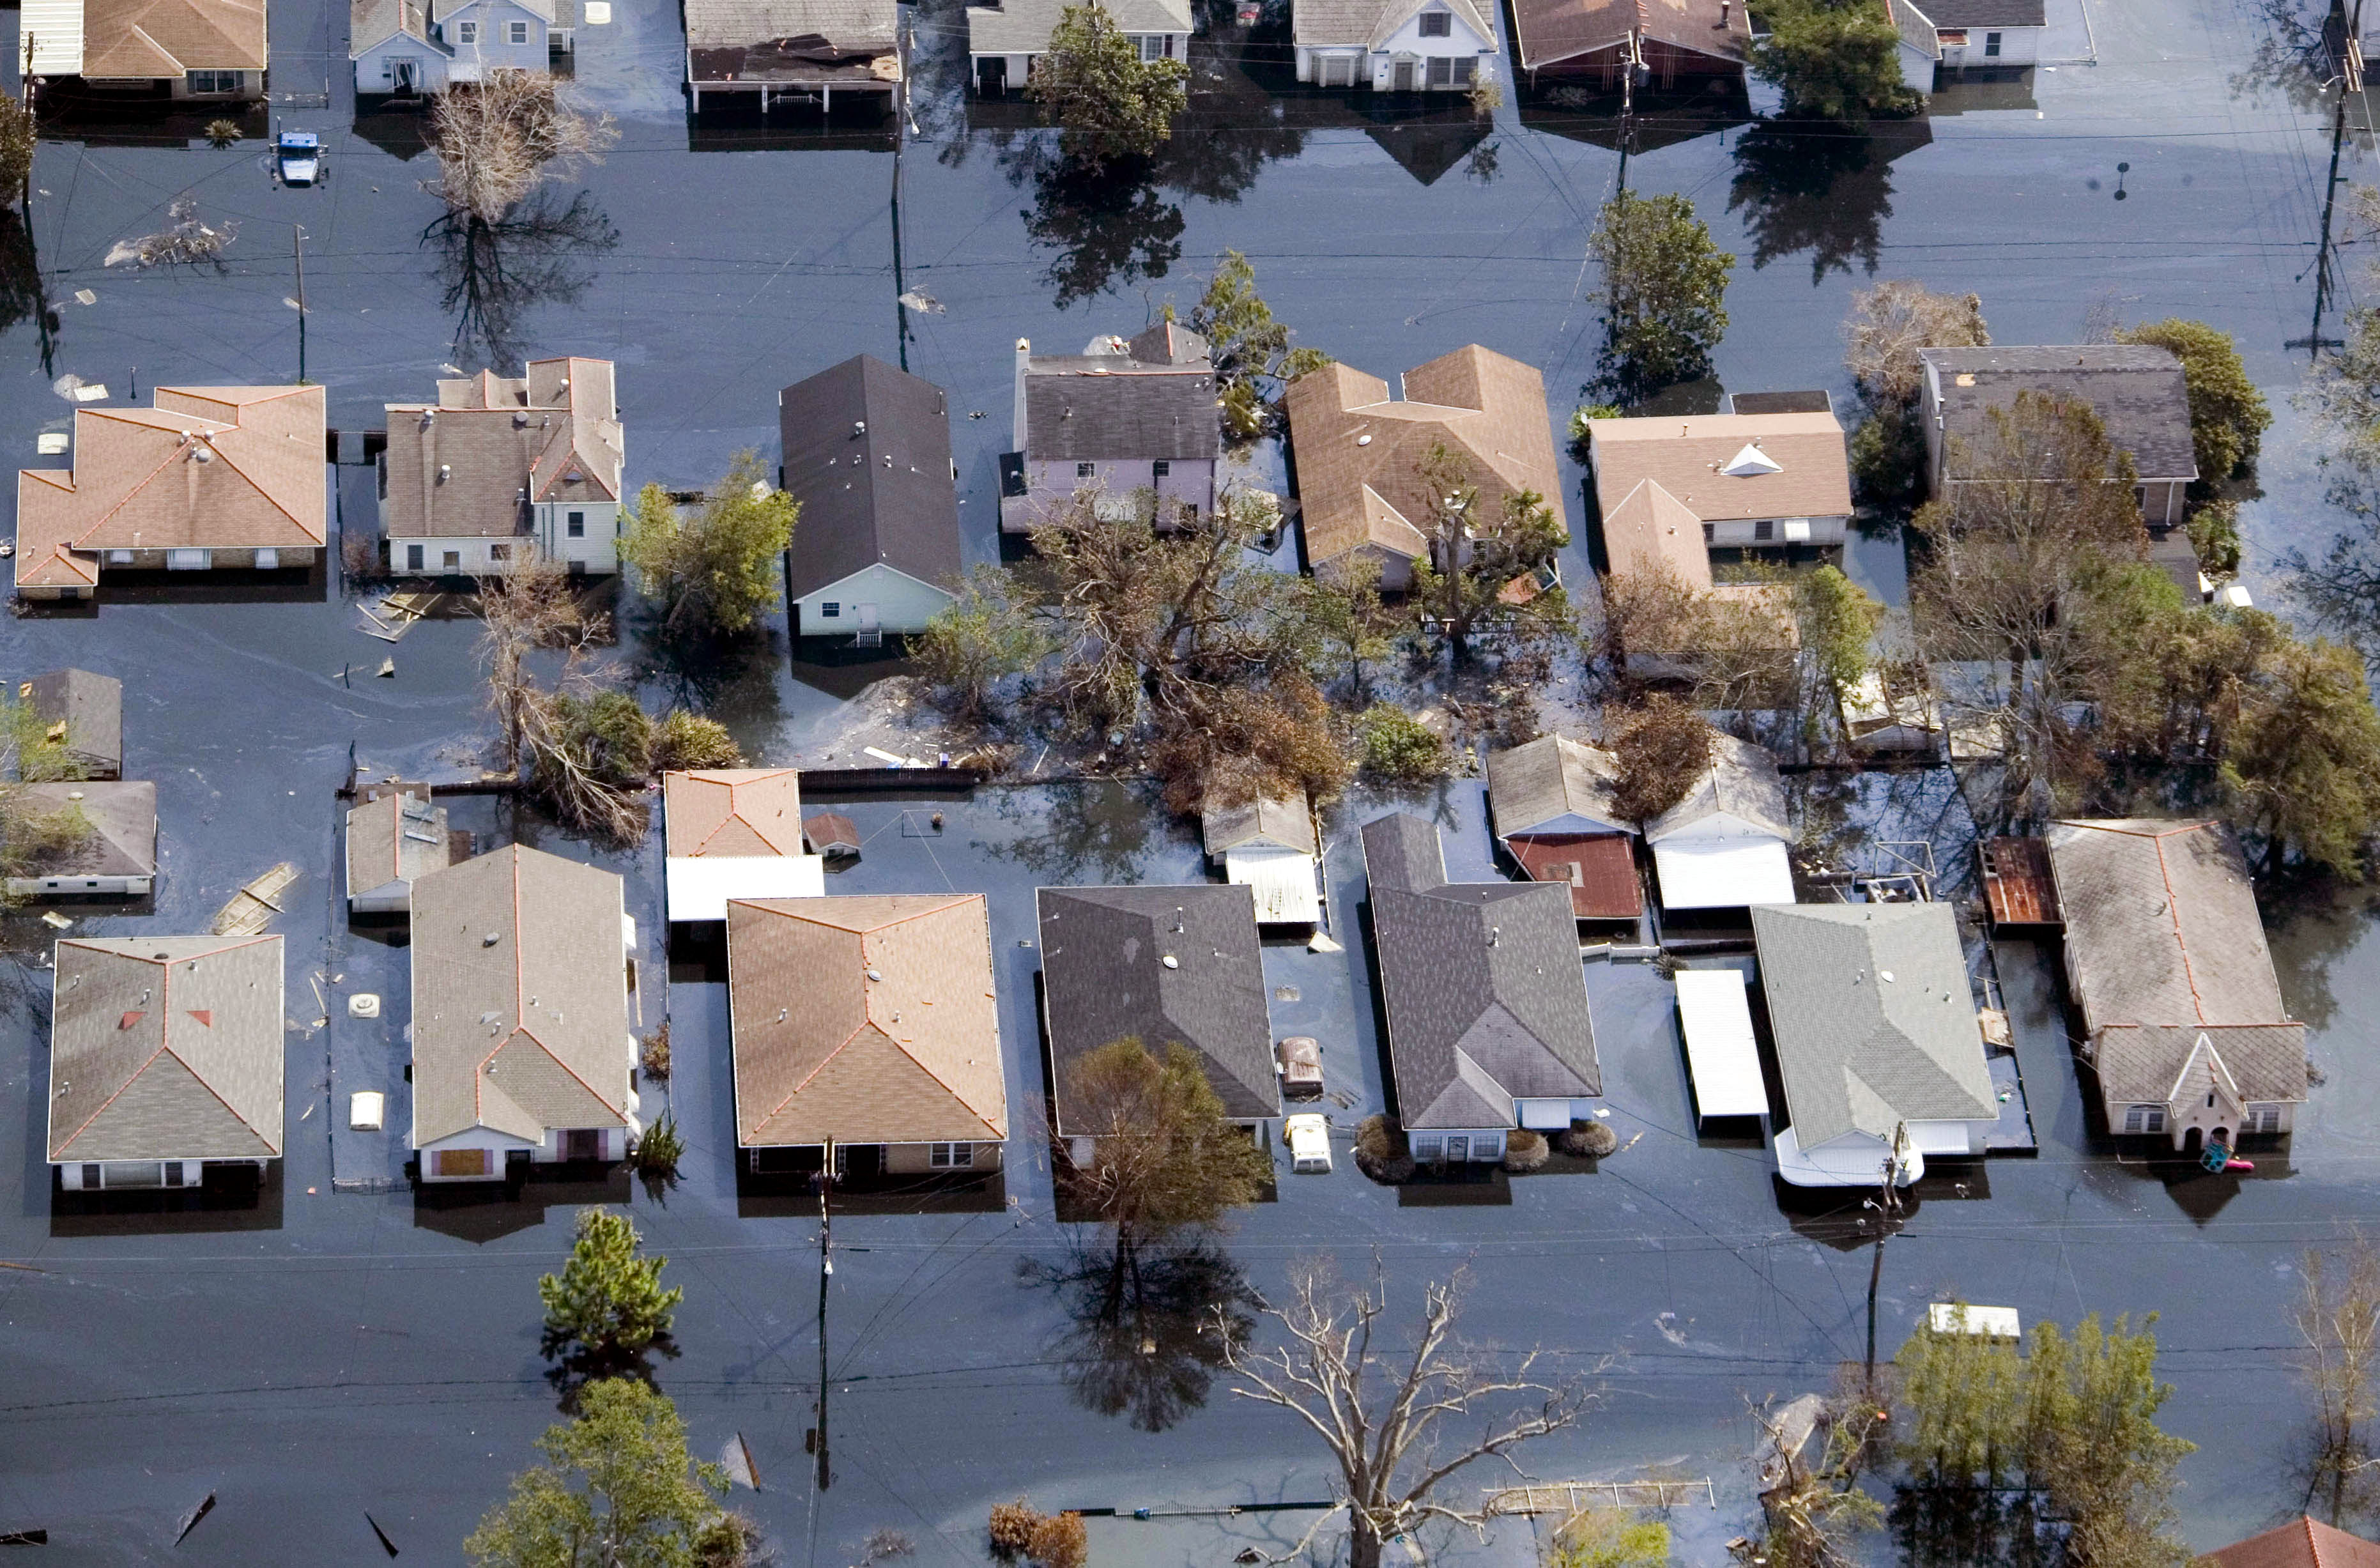 Houses lie flooded from Hurricane Katrina in the Gentilly neighborhood of New Orleans, Louisiana on Sept. 11, 2005.